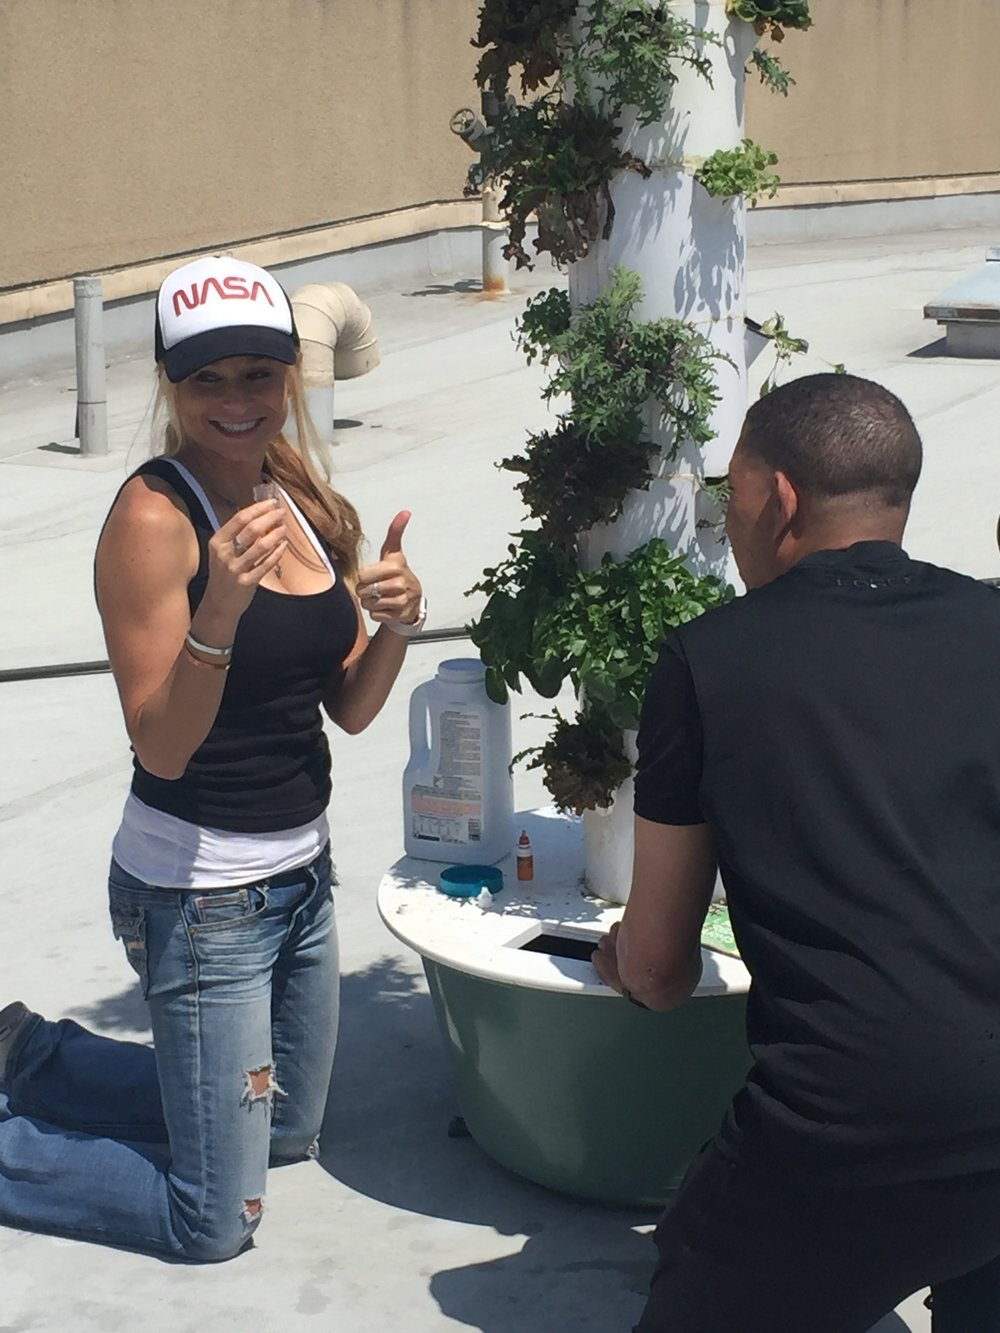 Edible Aeroponic Garden. Rooftop LA Mission, Skid Row.